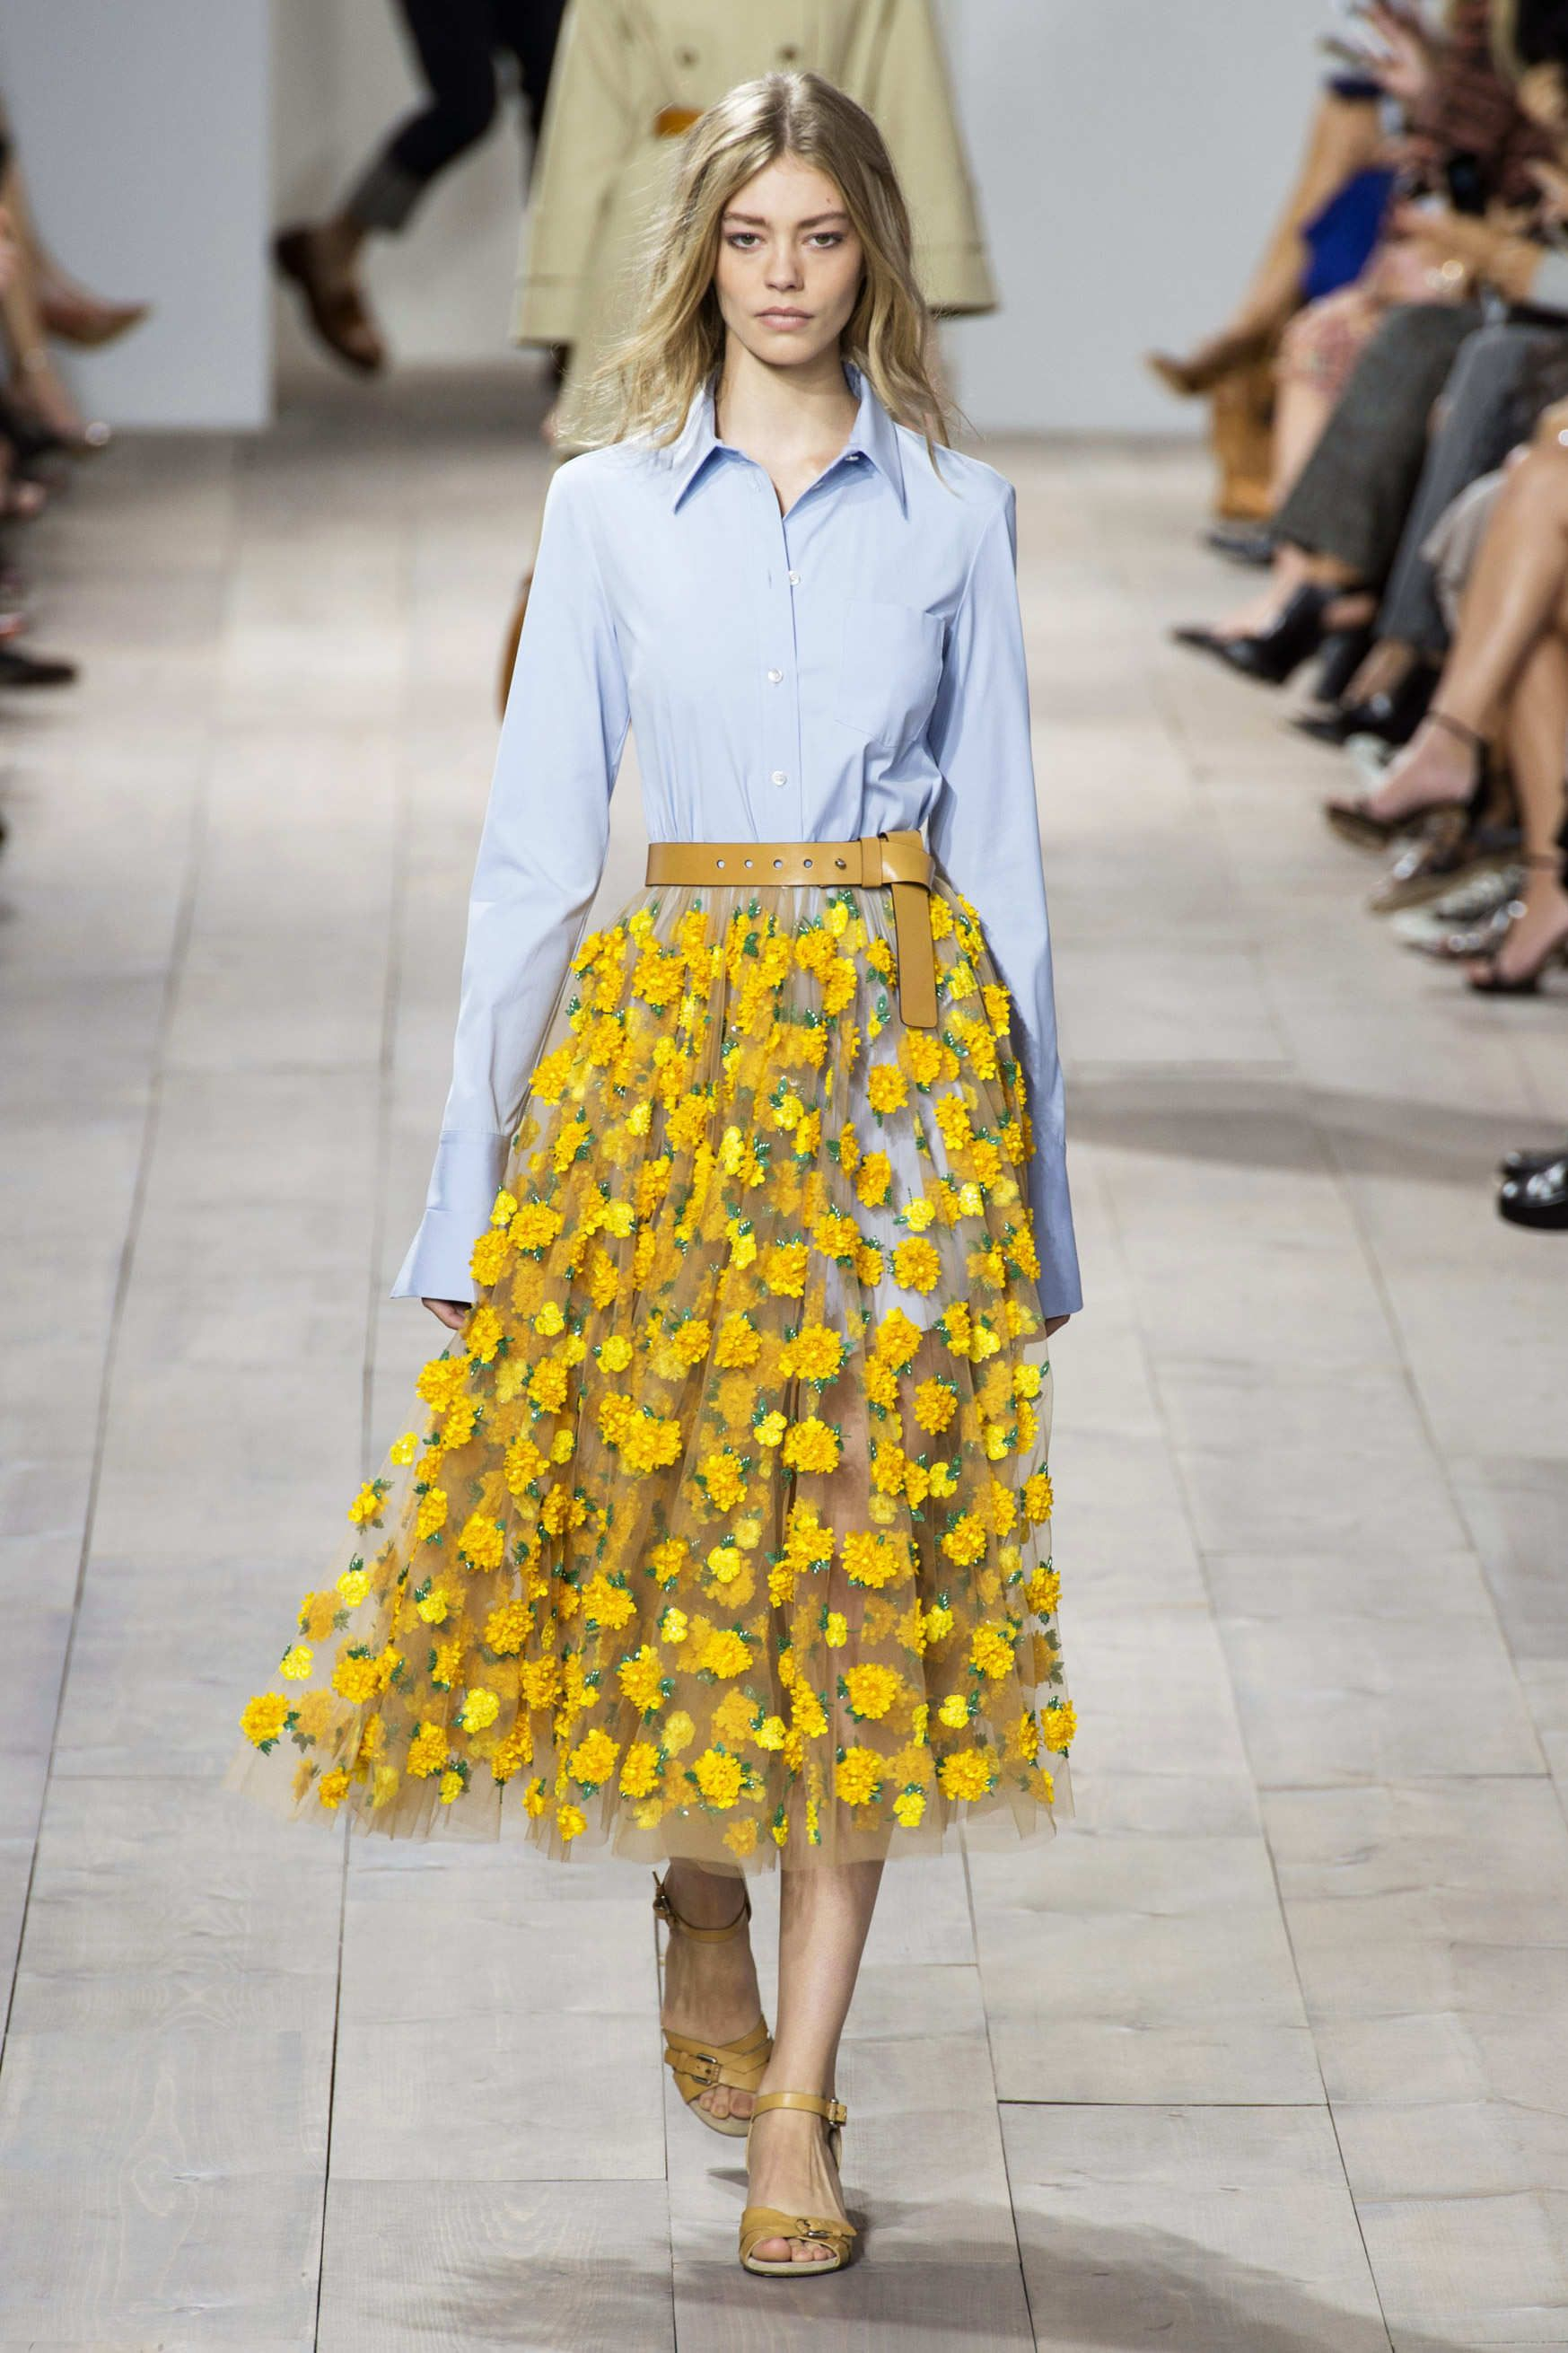 5809ba9e4f This Yellow Skirt // Michael Kors Collection Spring 2015 RTW #NYFW